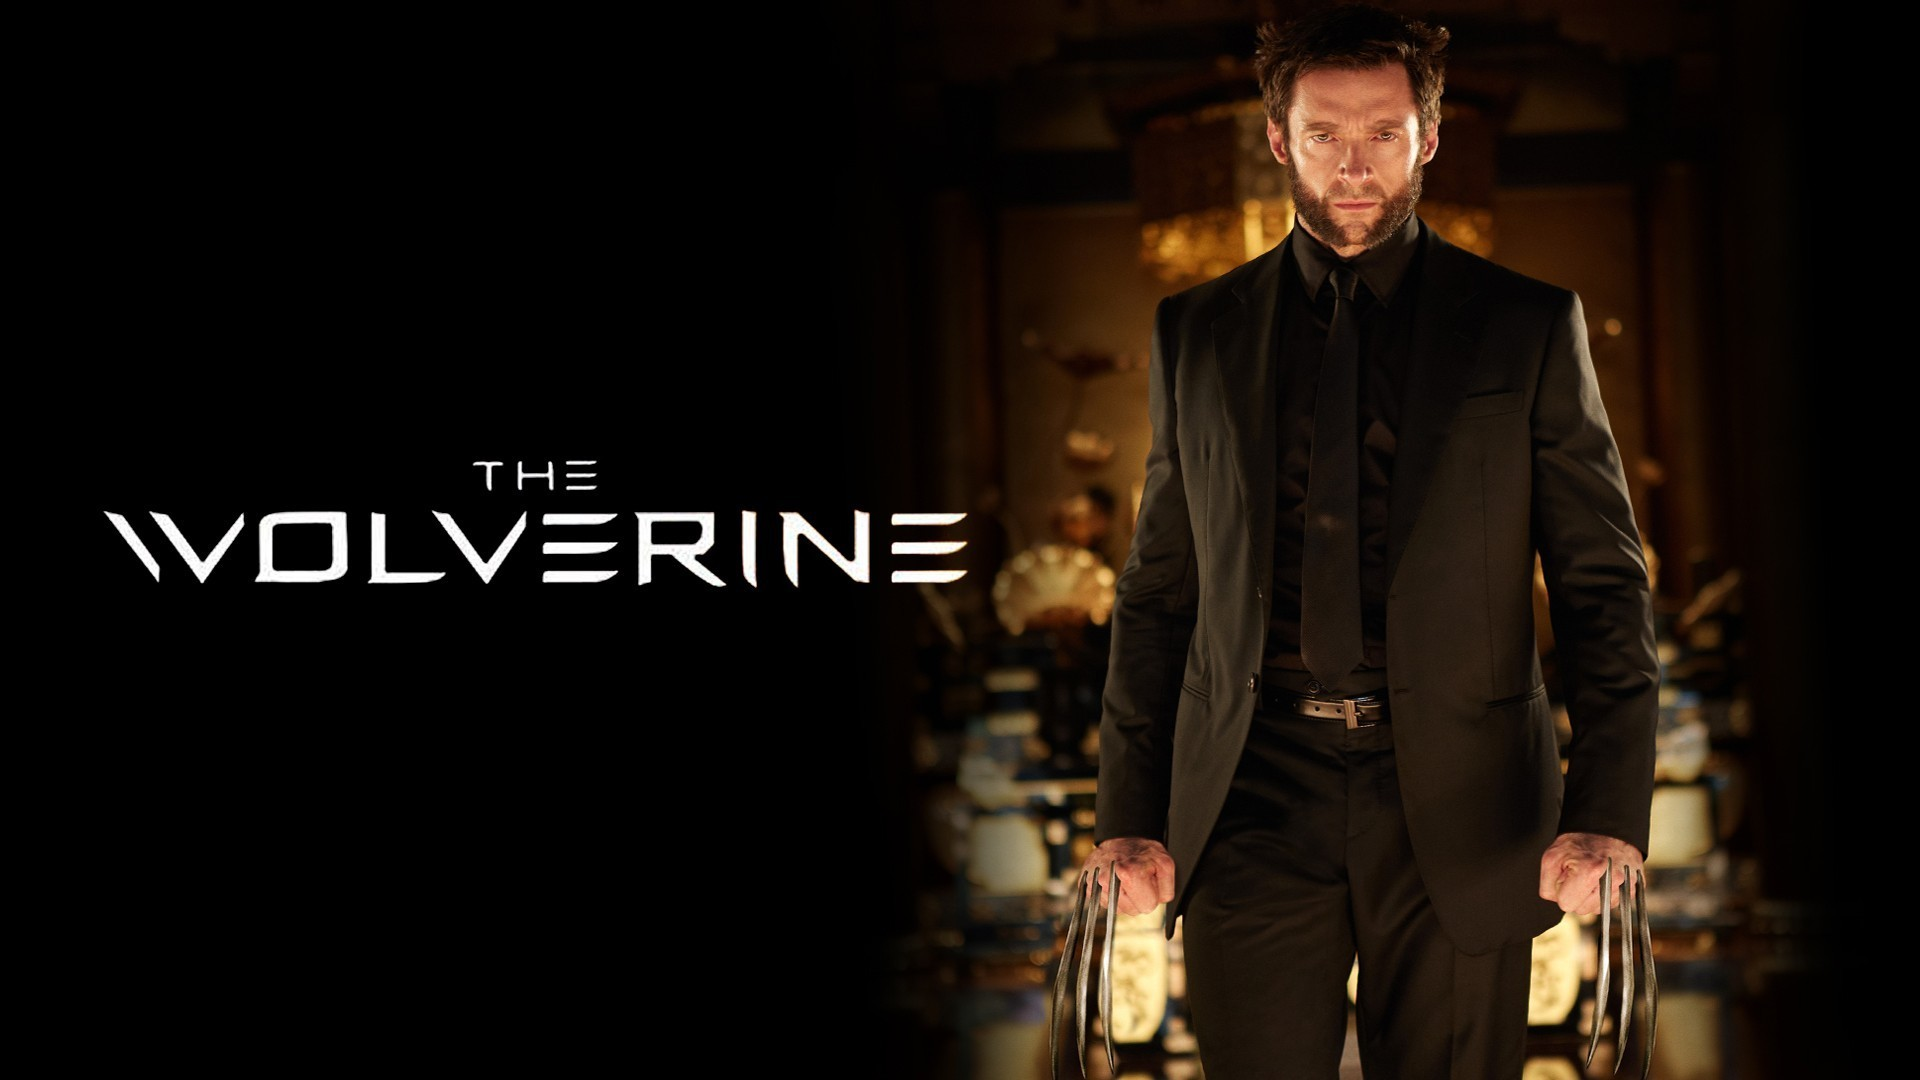 Res: 1920x1080, The Wolverine images The Wolverine HD wallpaper and background photos